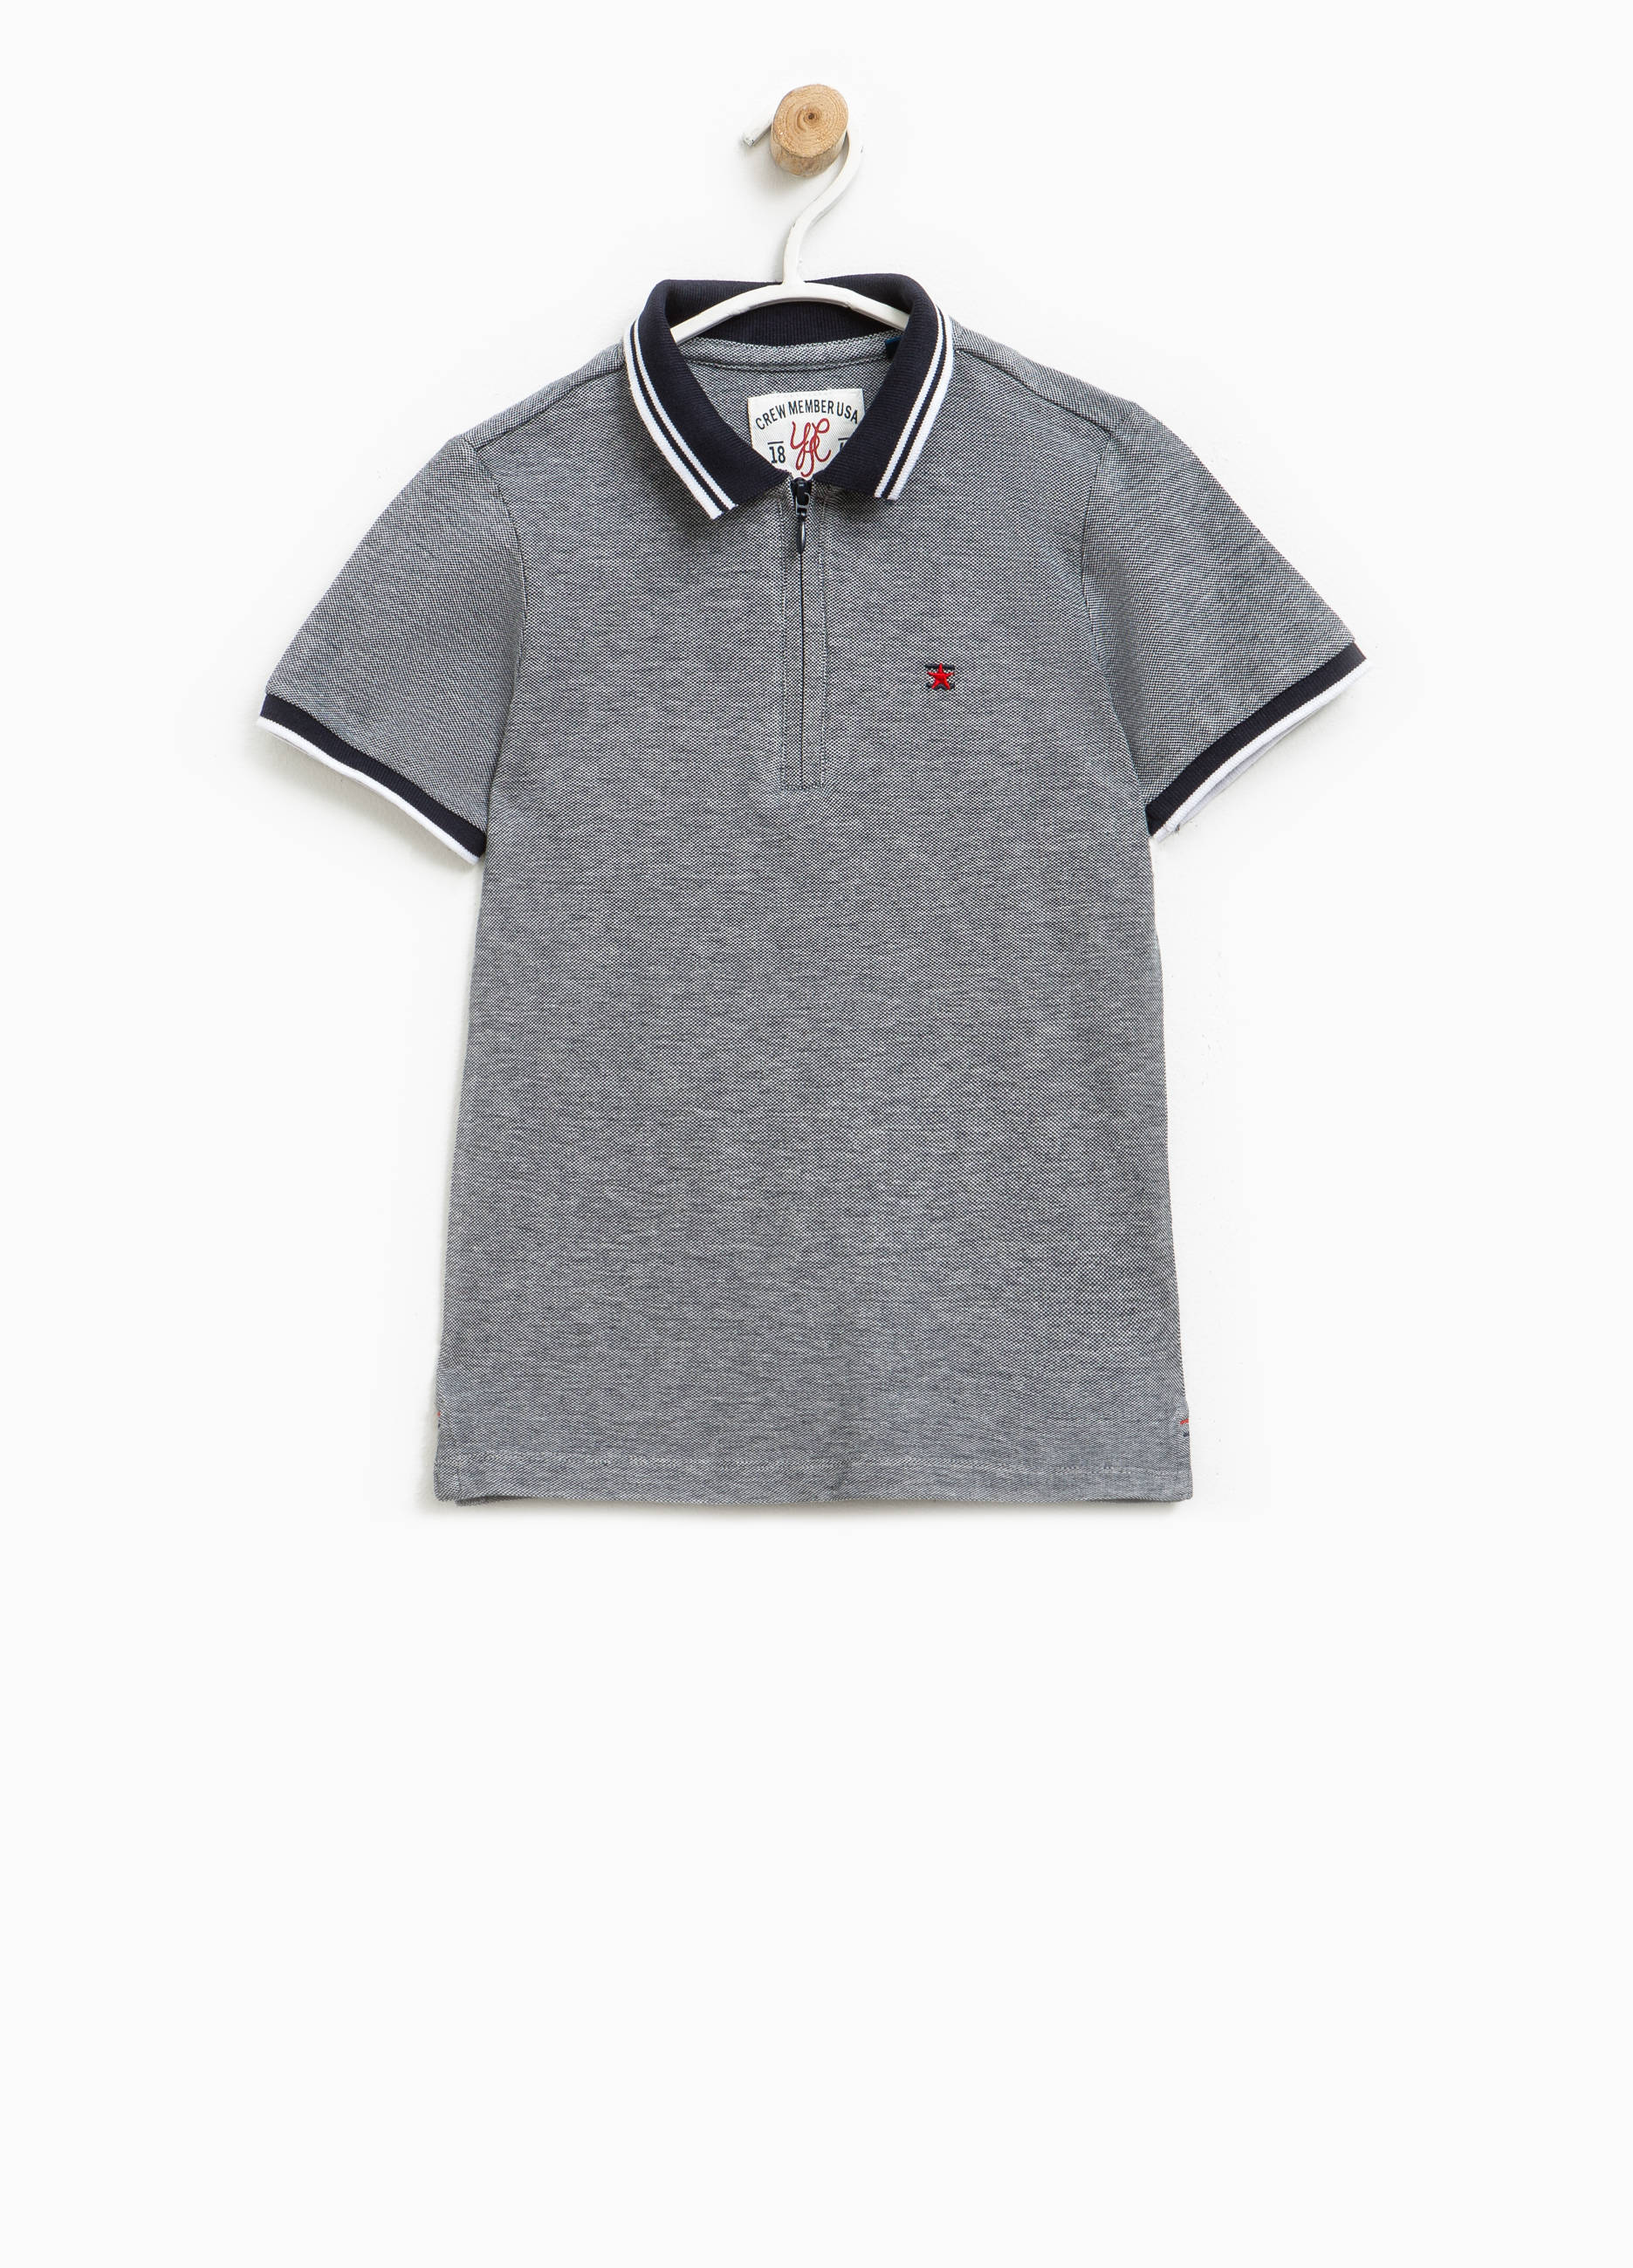 9f4cf341d6ef73 100% cotton polo shirt with zip and embroidery